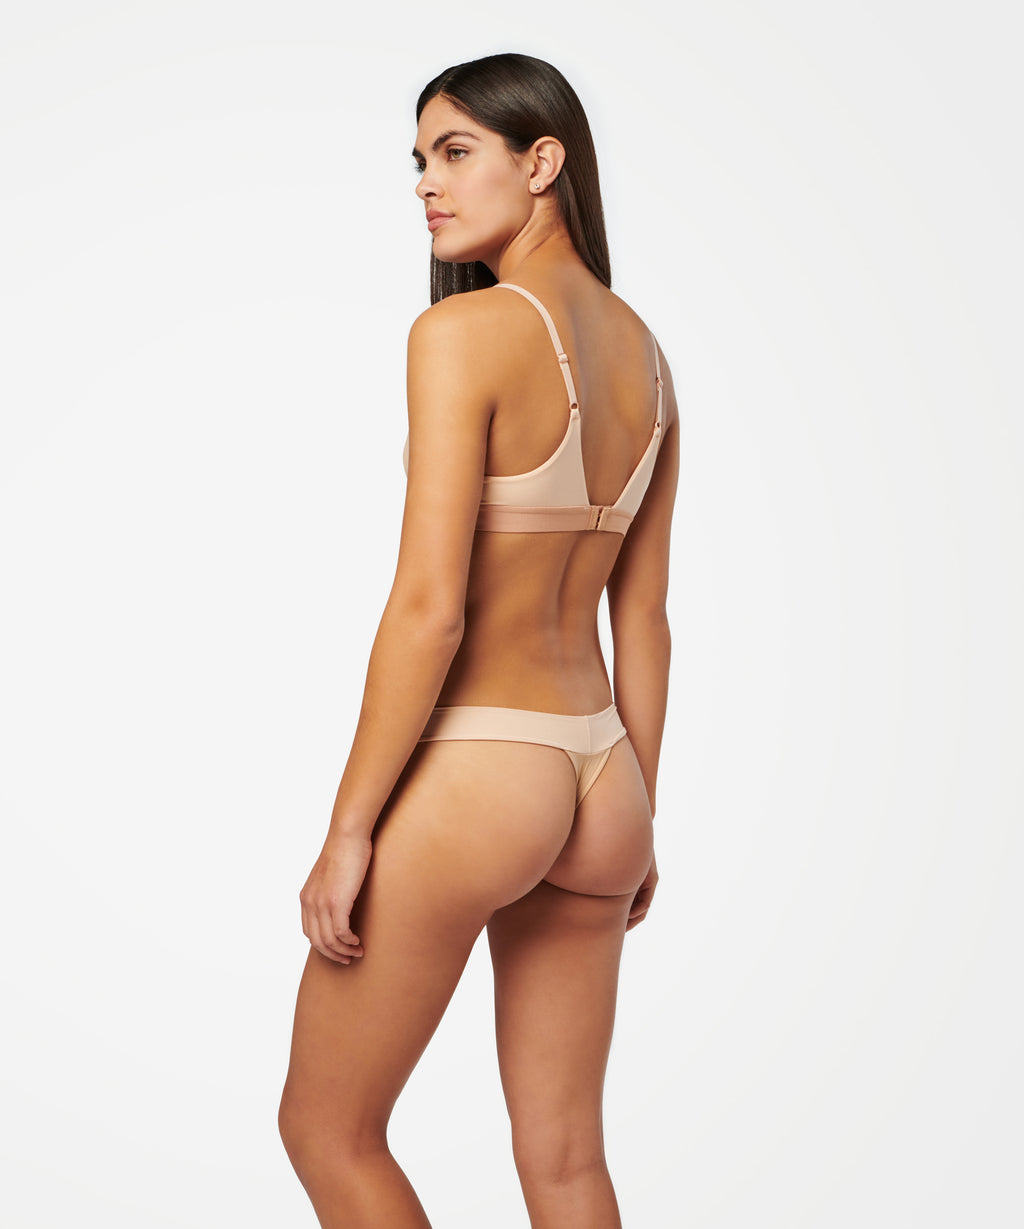 WIDE SIDE THONG NYLON - UNDIES